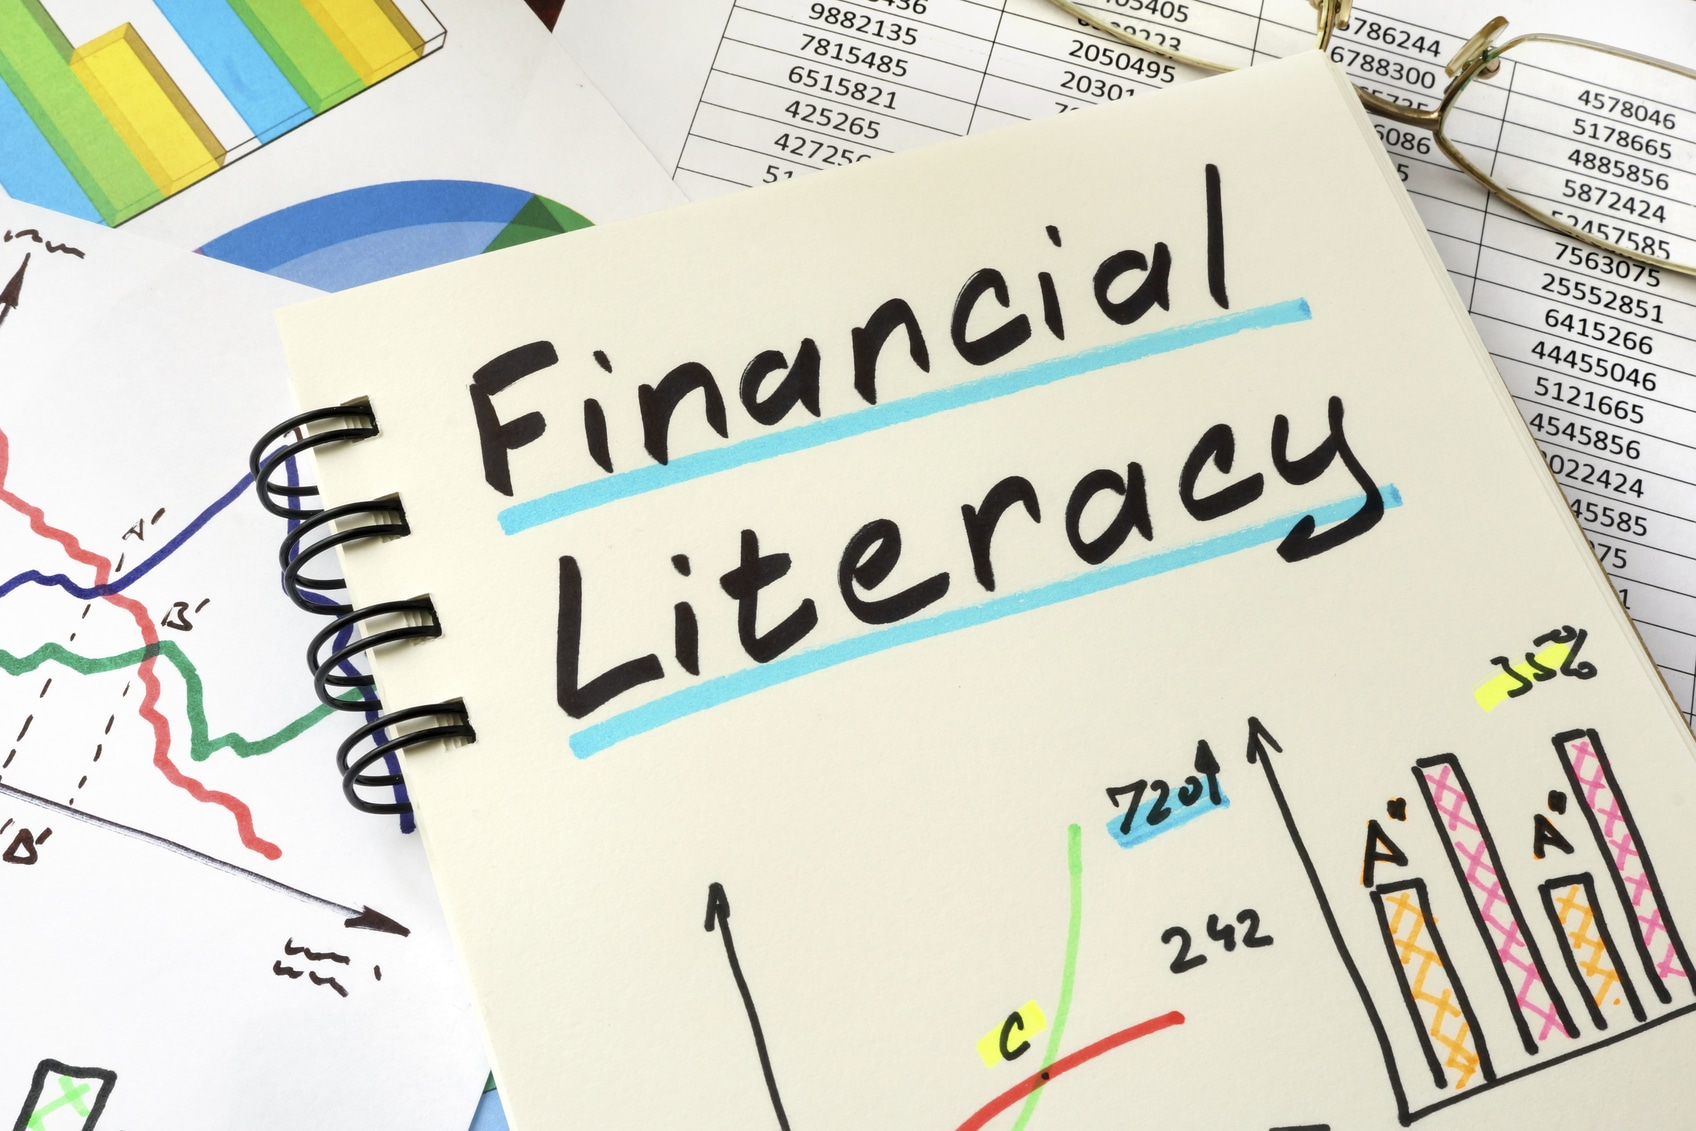 ONLINE College Financial Aid 1 on 1 at Patchogue-Medford Library